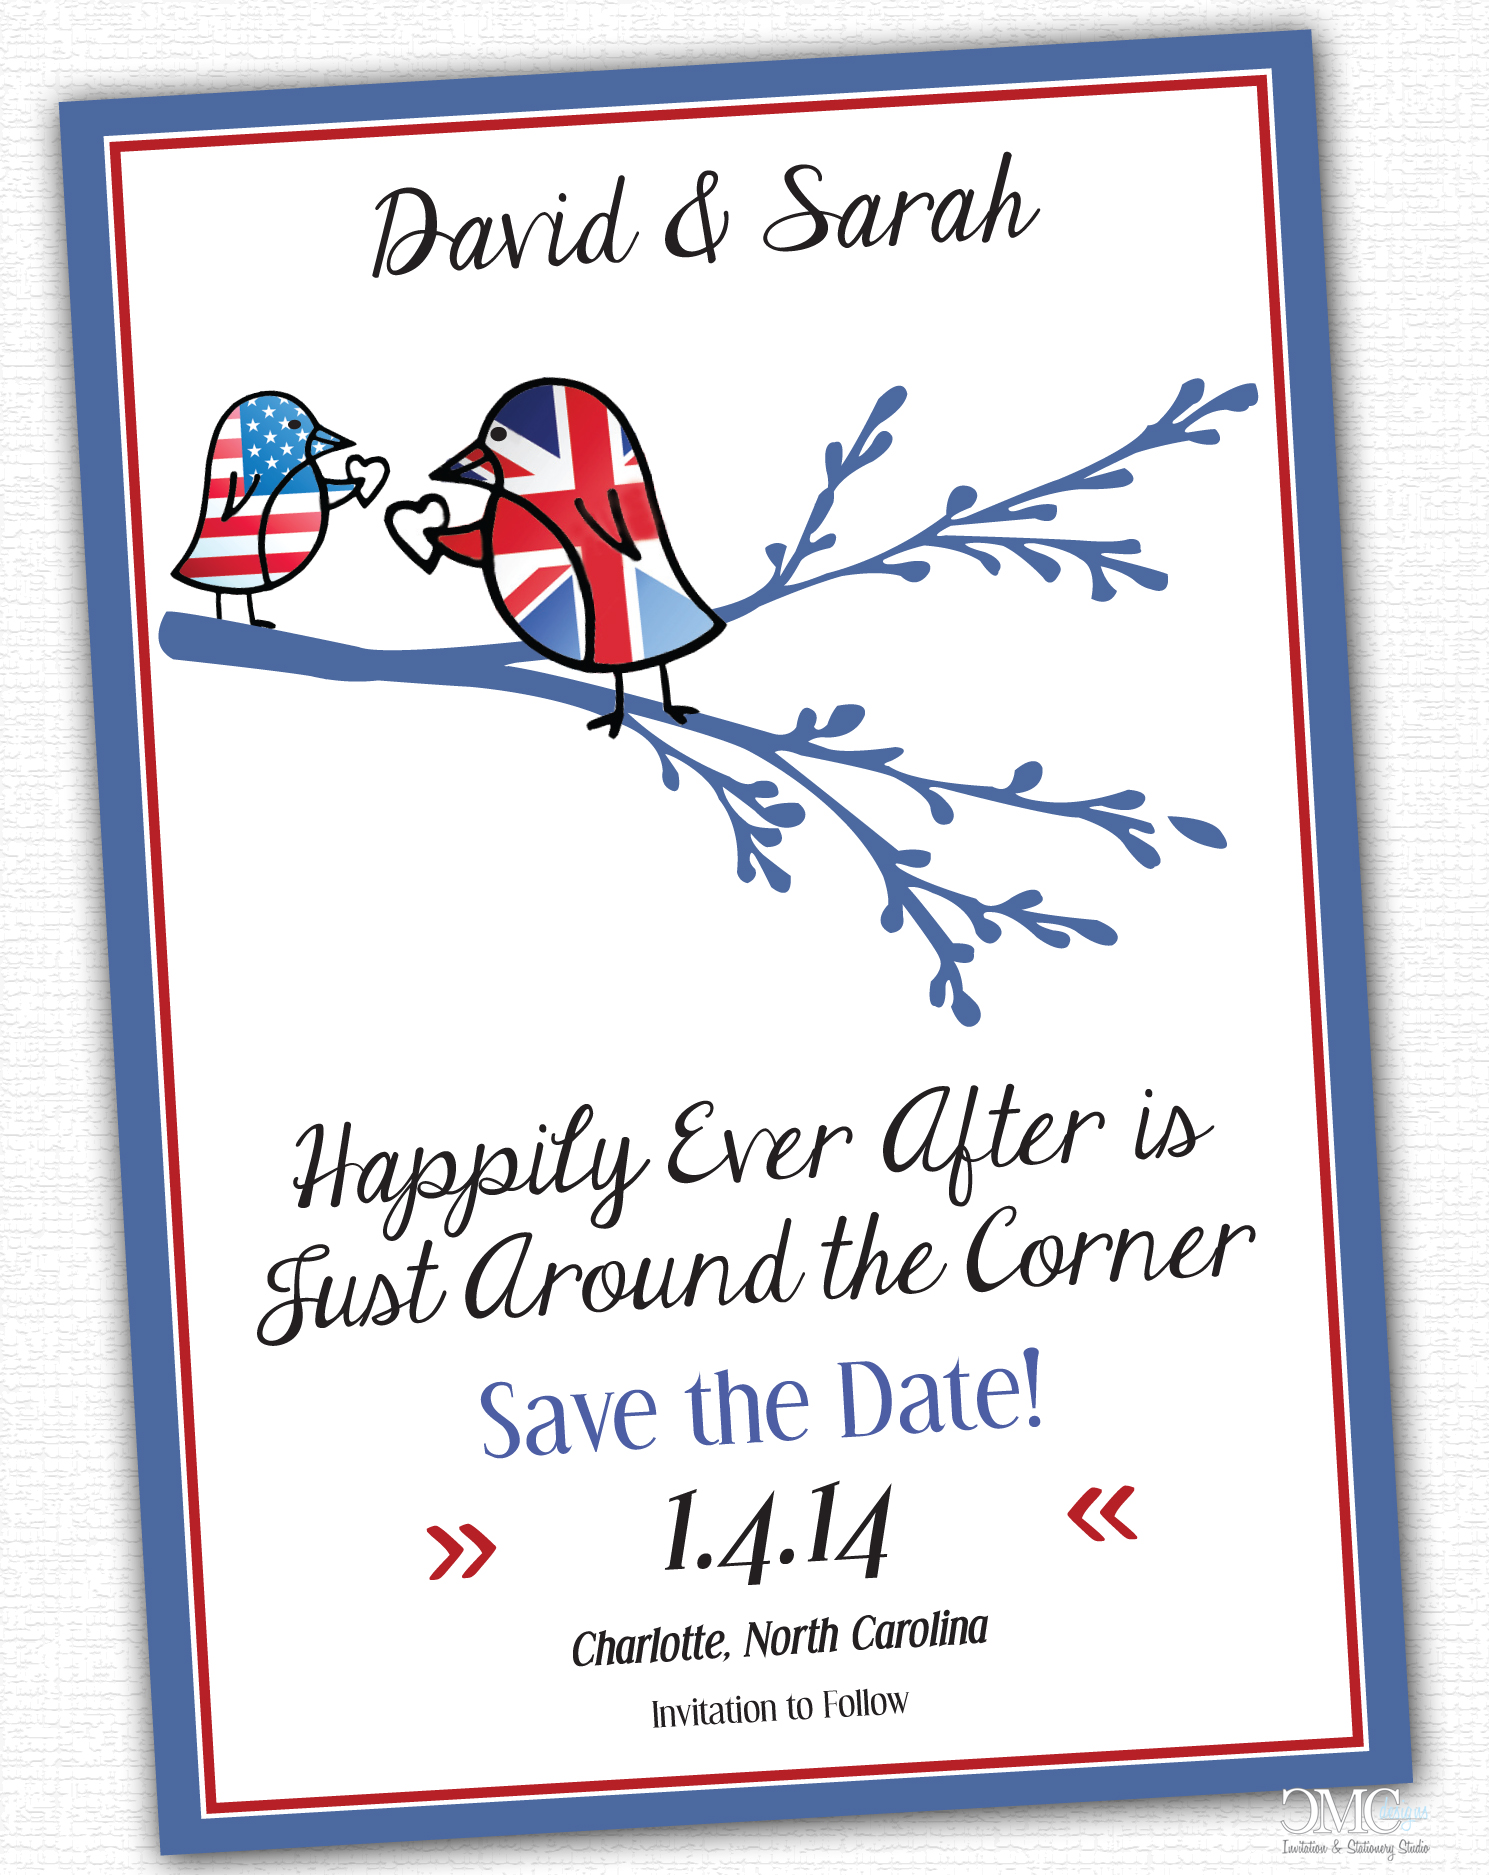 British/American Wedding Designs | Christi Marie Creative